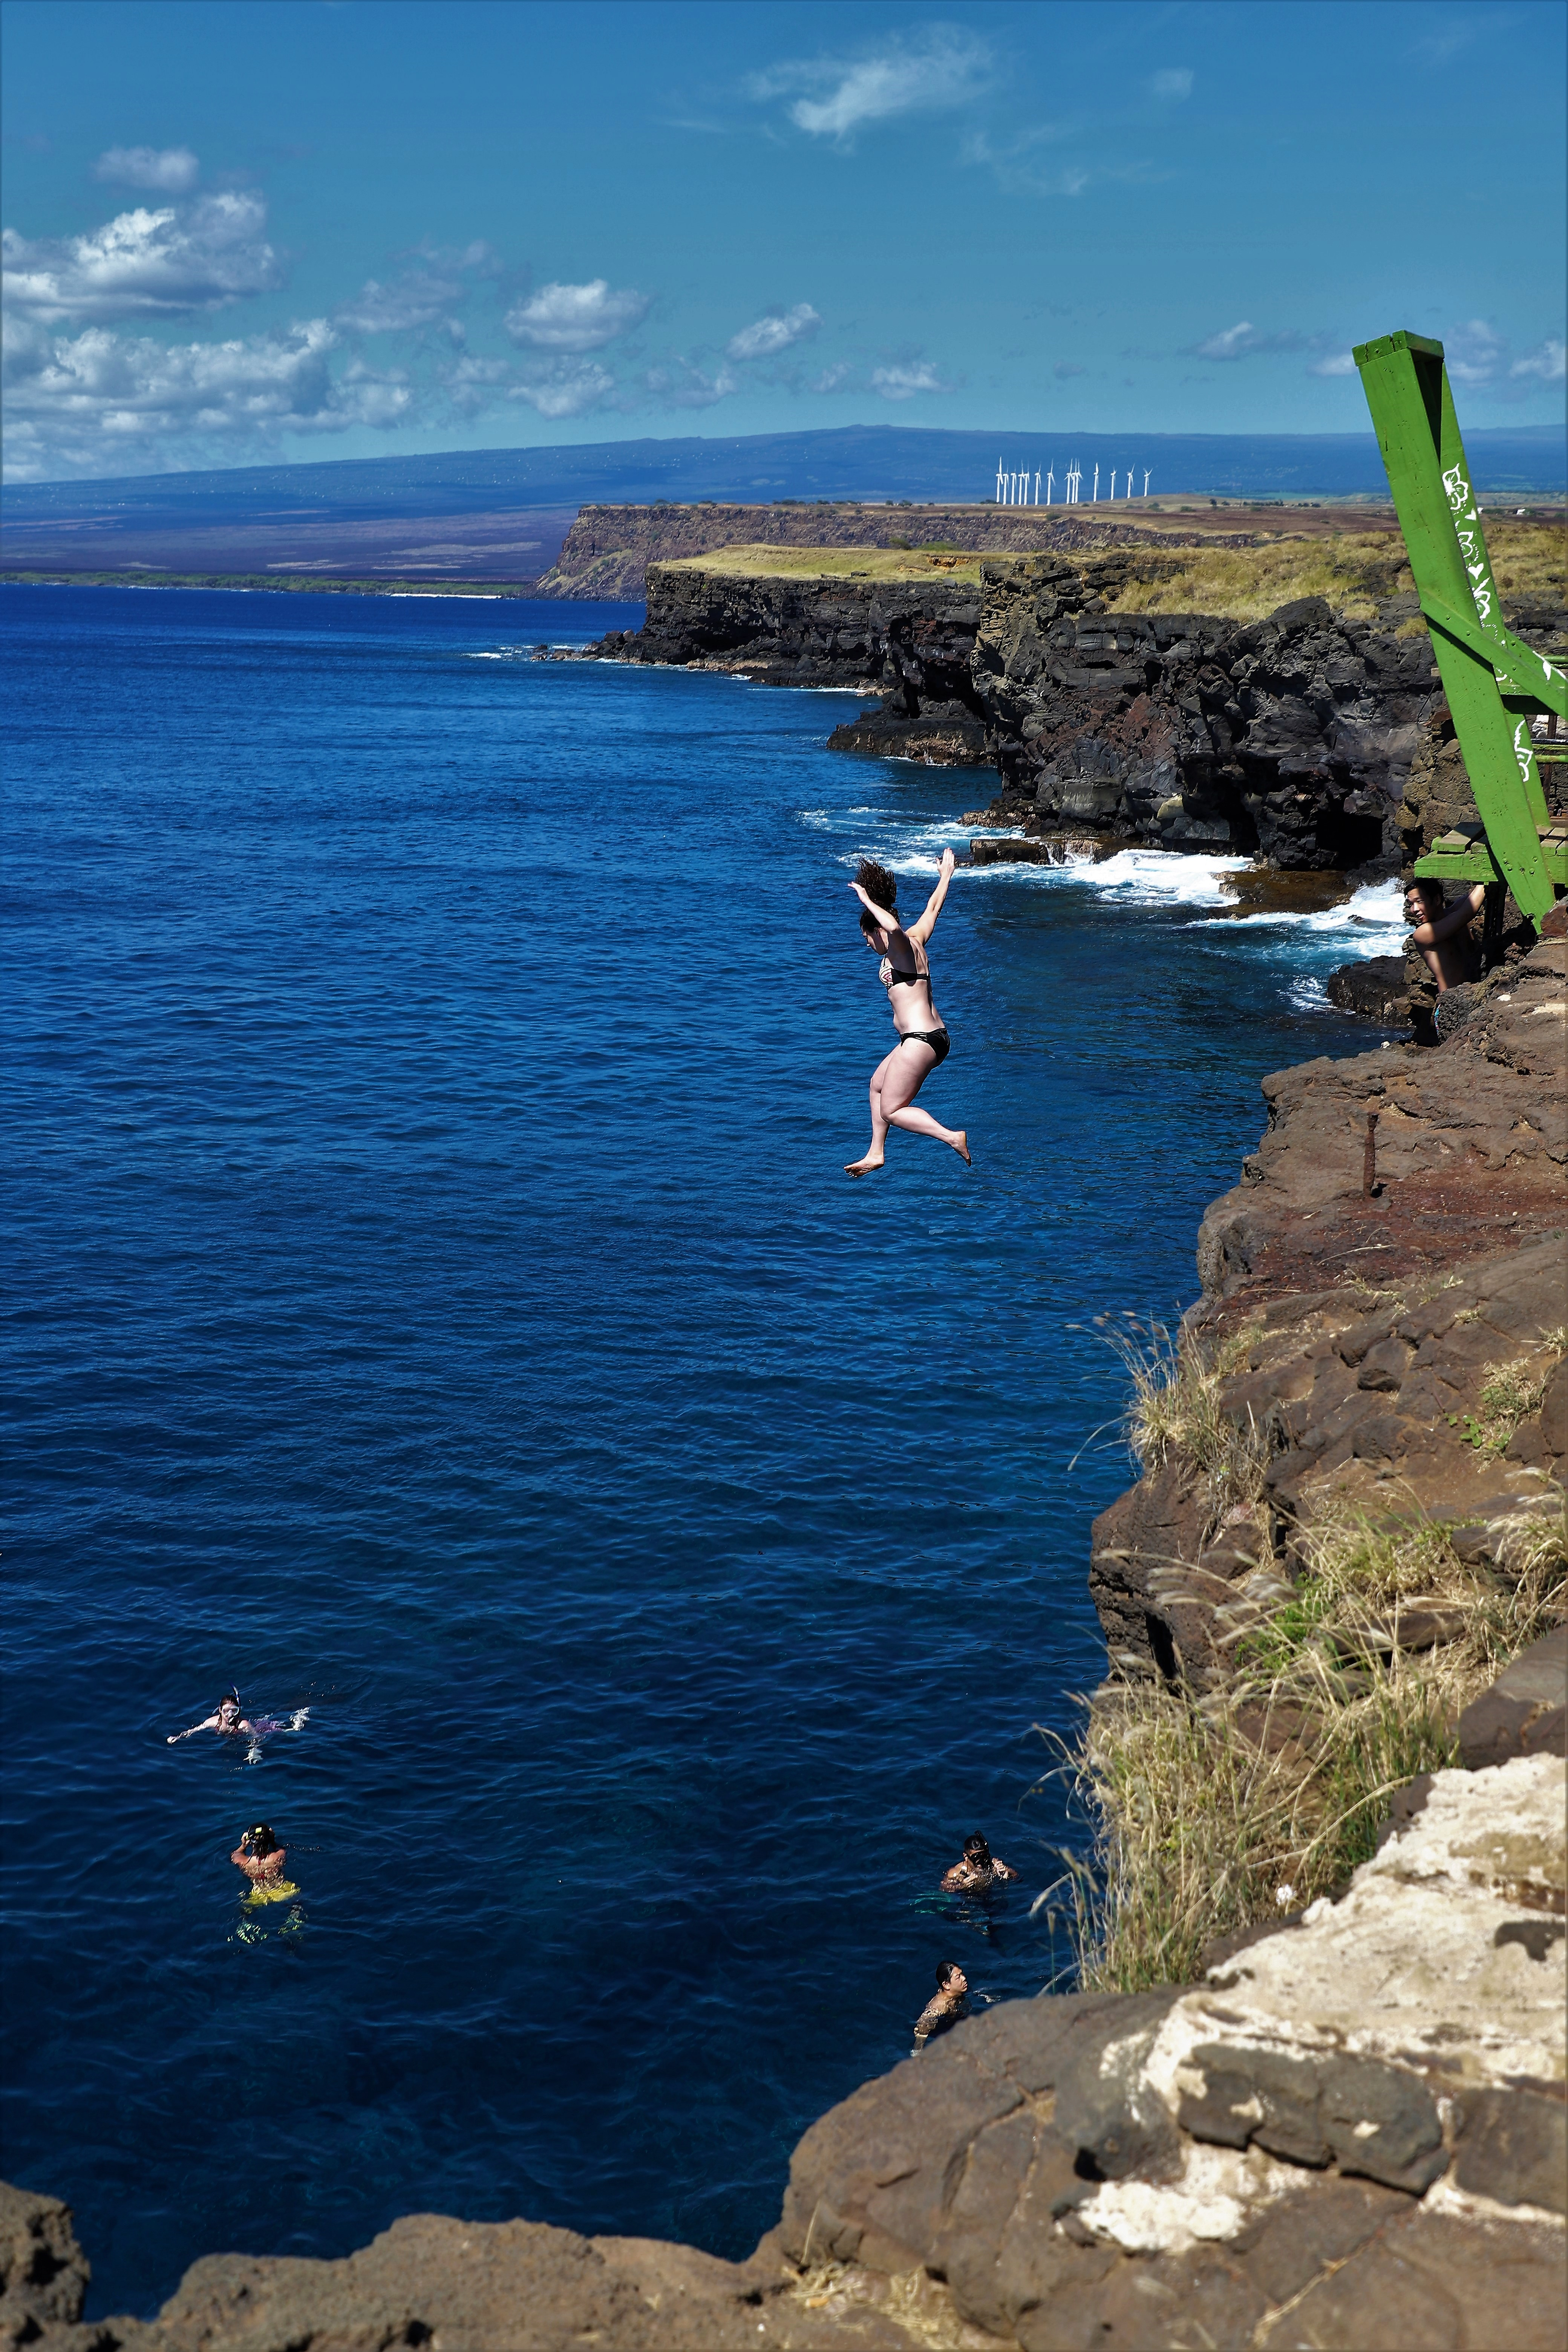 2018 11 13 96 Big Island HI  South Point.JPG